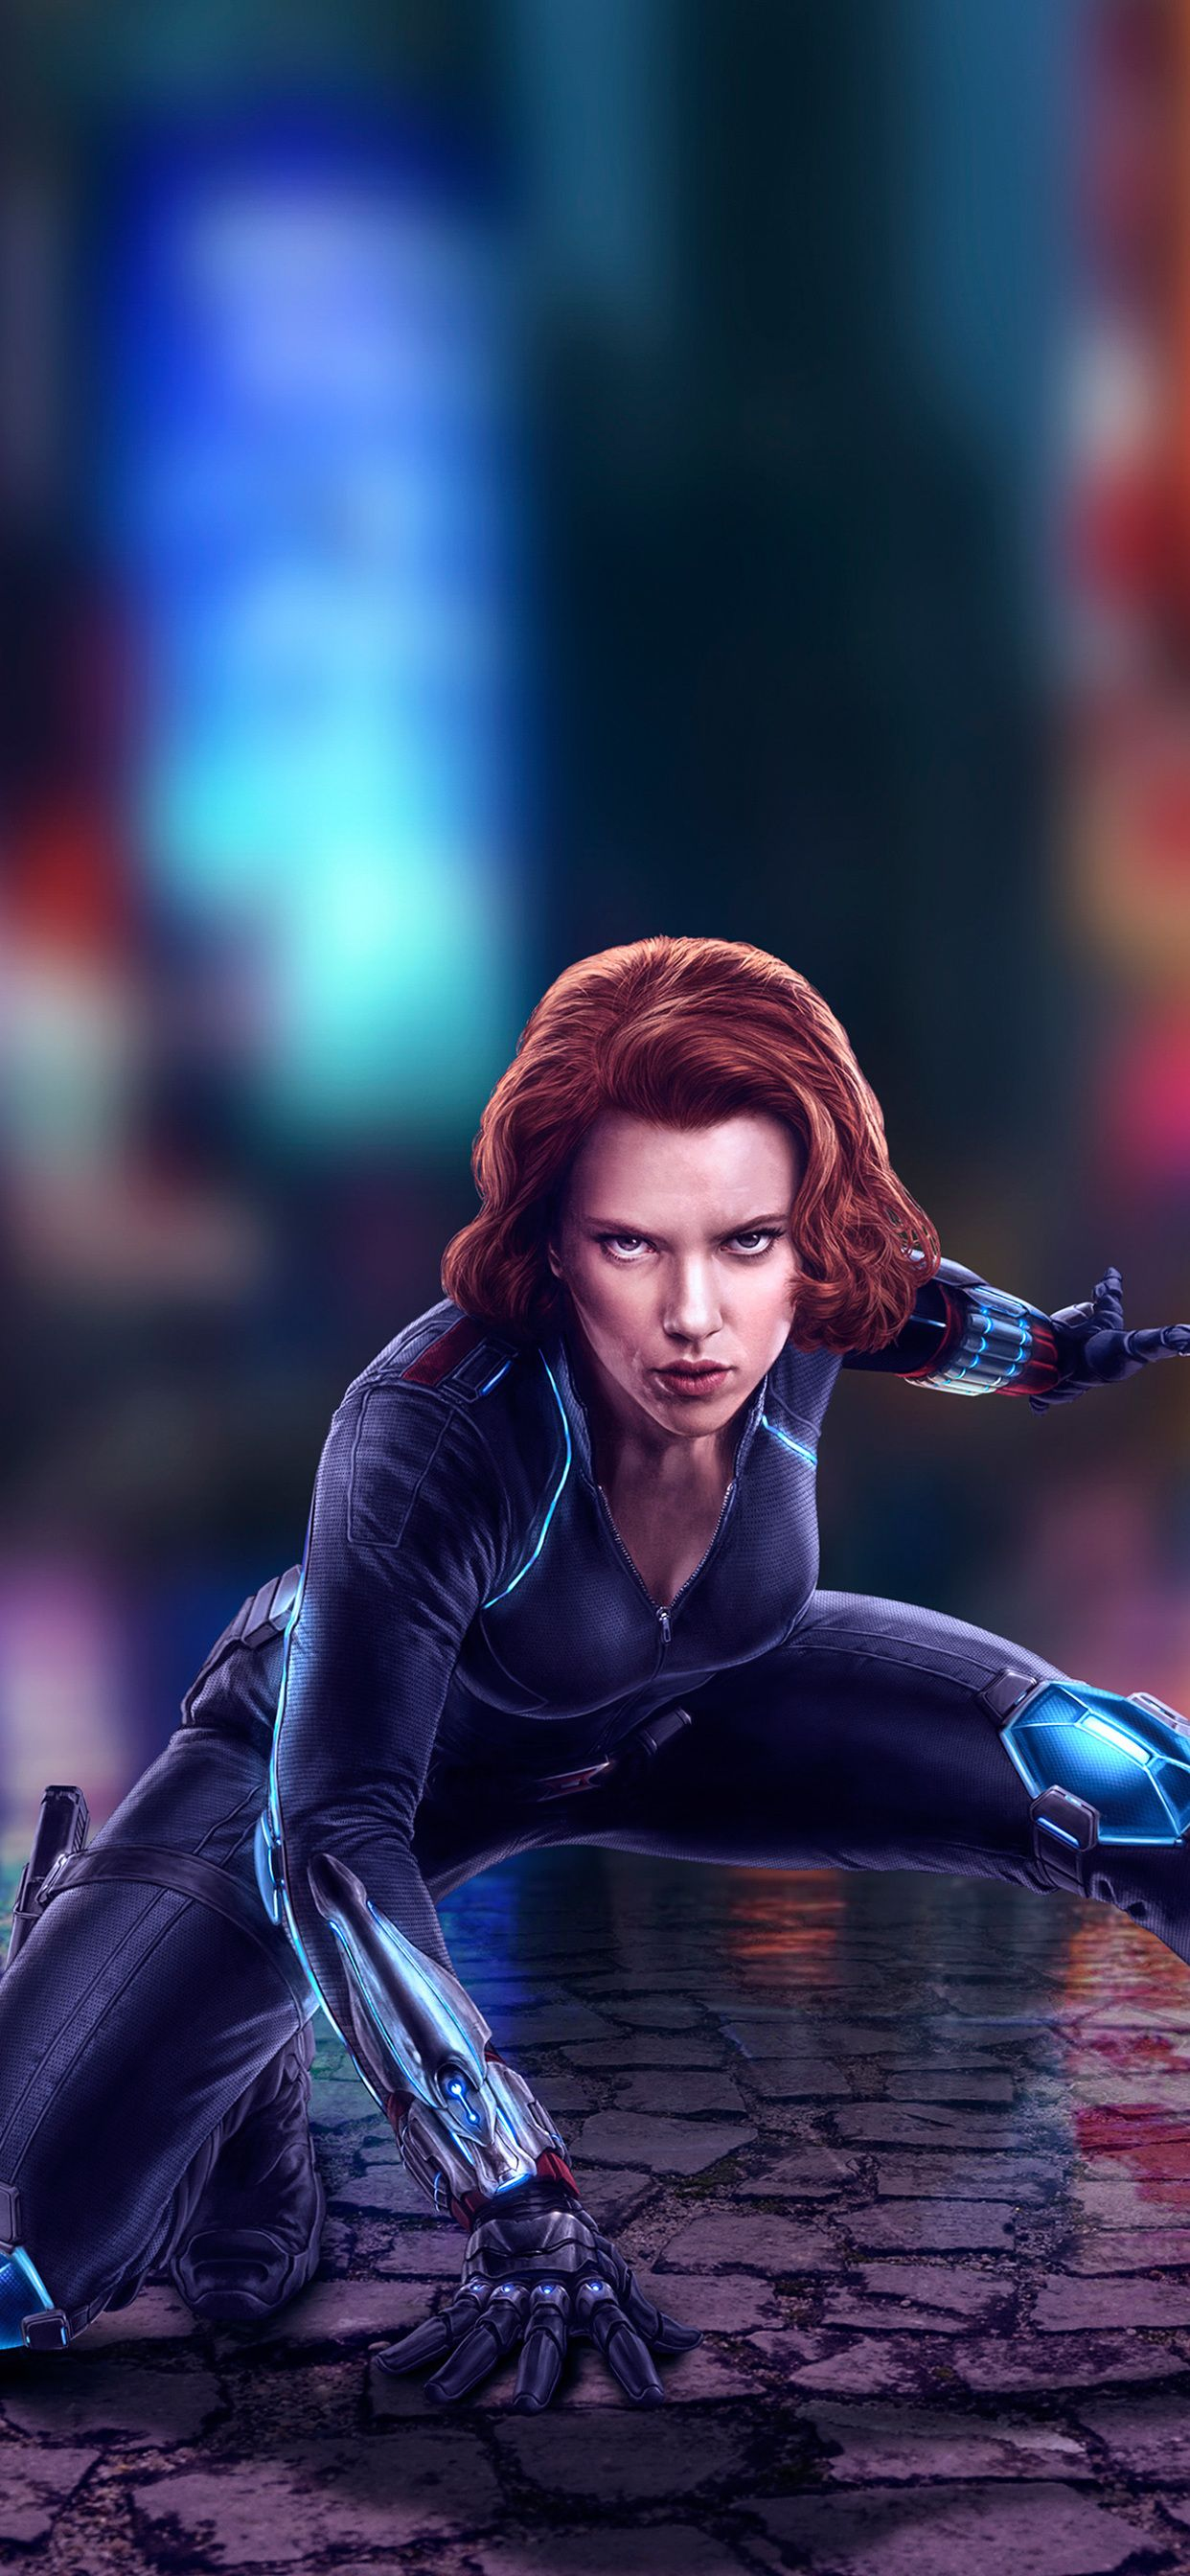 Iphone Xs Max Avengers Wallpaper : iphone, avengers, wallpaper, 1242x2688, Black, Widow, Iphone, Wallpapers,, Images,, Backgrounds,, Photos, Pictures, Marvel,, Widow,, Wallpaper